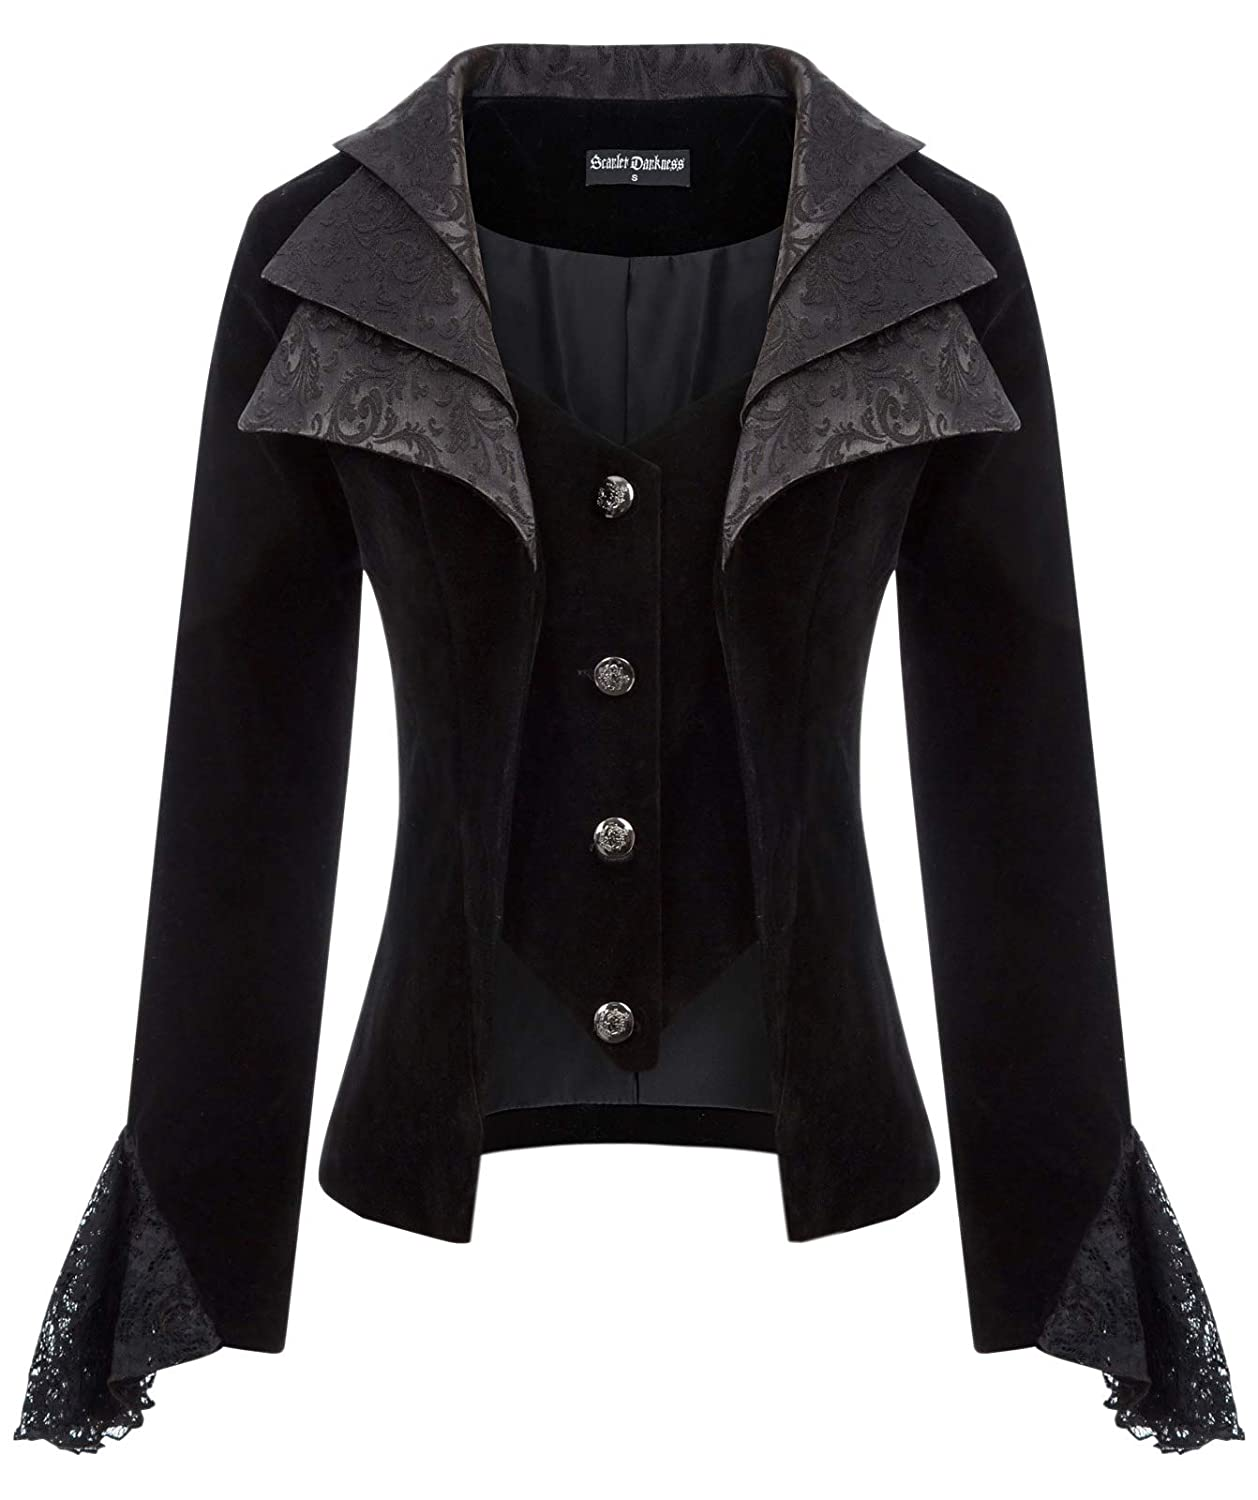 Steampunk Jacket | Steampunk Coat, Overcoat, Cape Womens Gothic Vampire Jacket Lapel Collar Coat Steampunk Long Sleeve Costume Top $37.99 AT vintagedancer.com